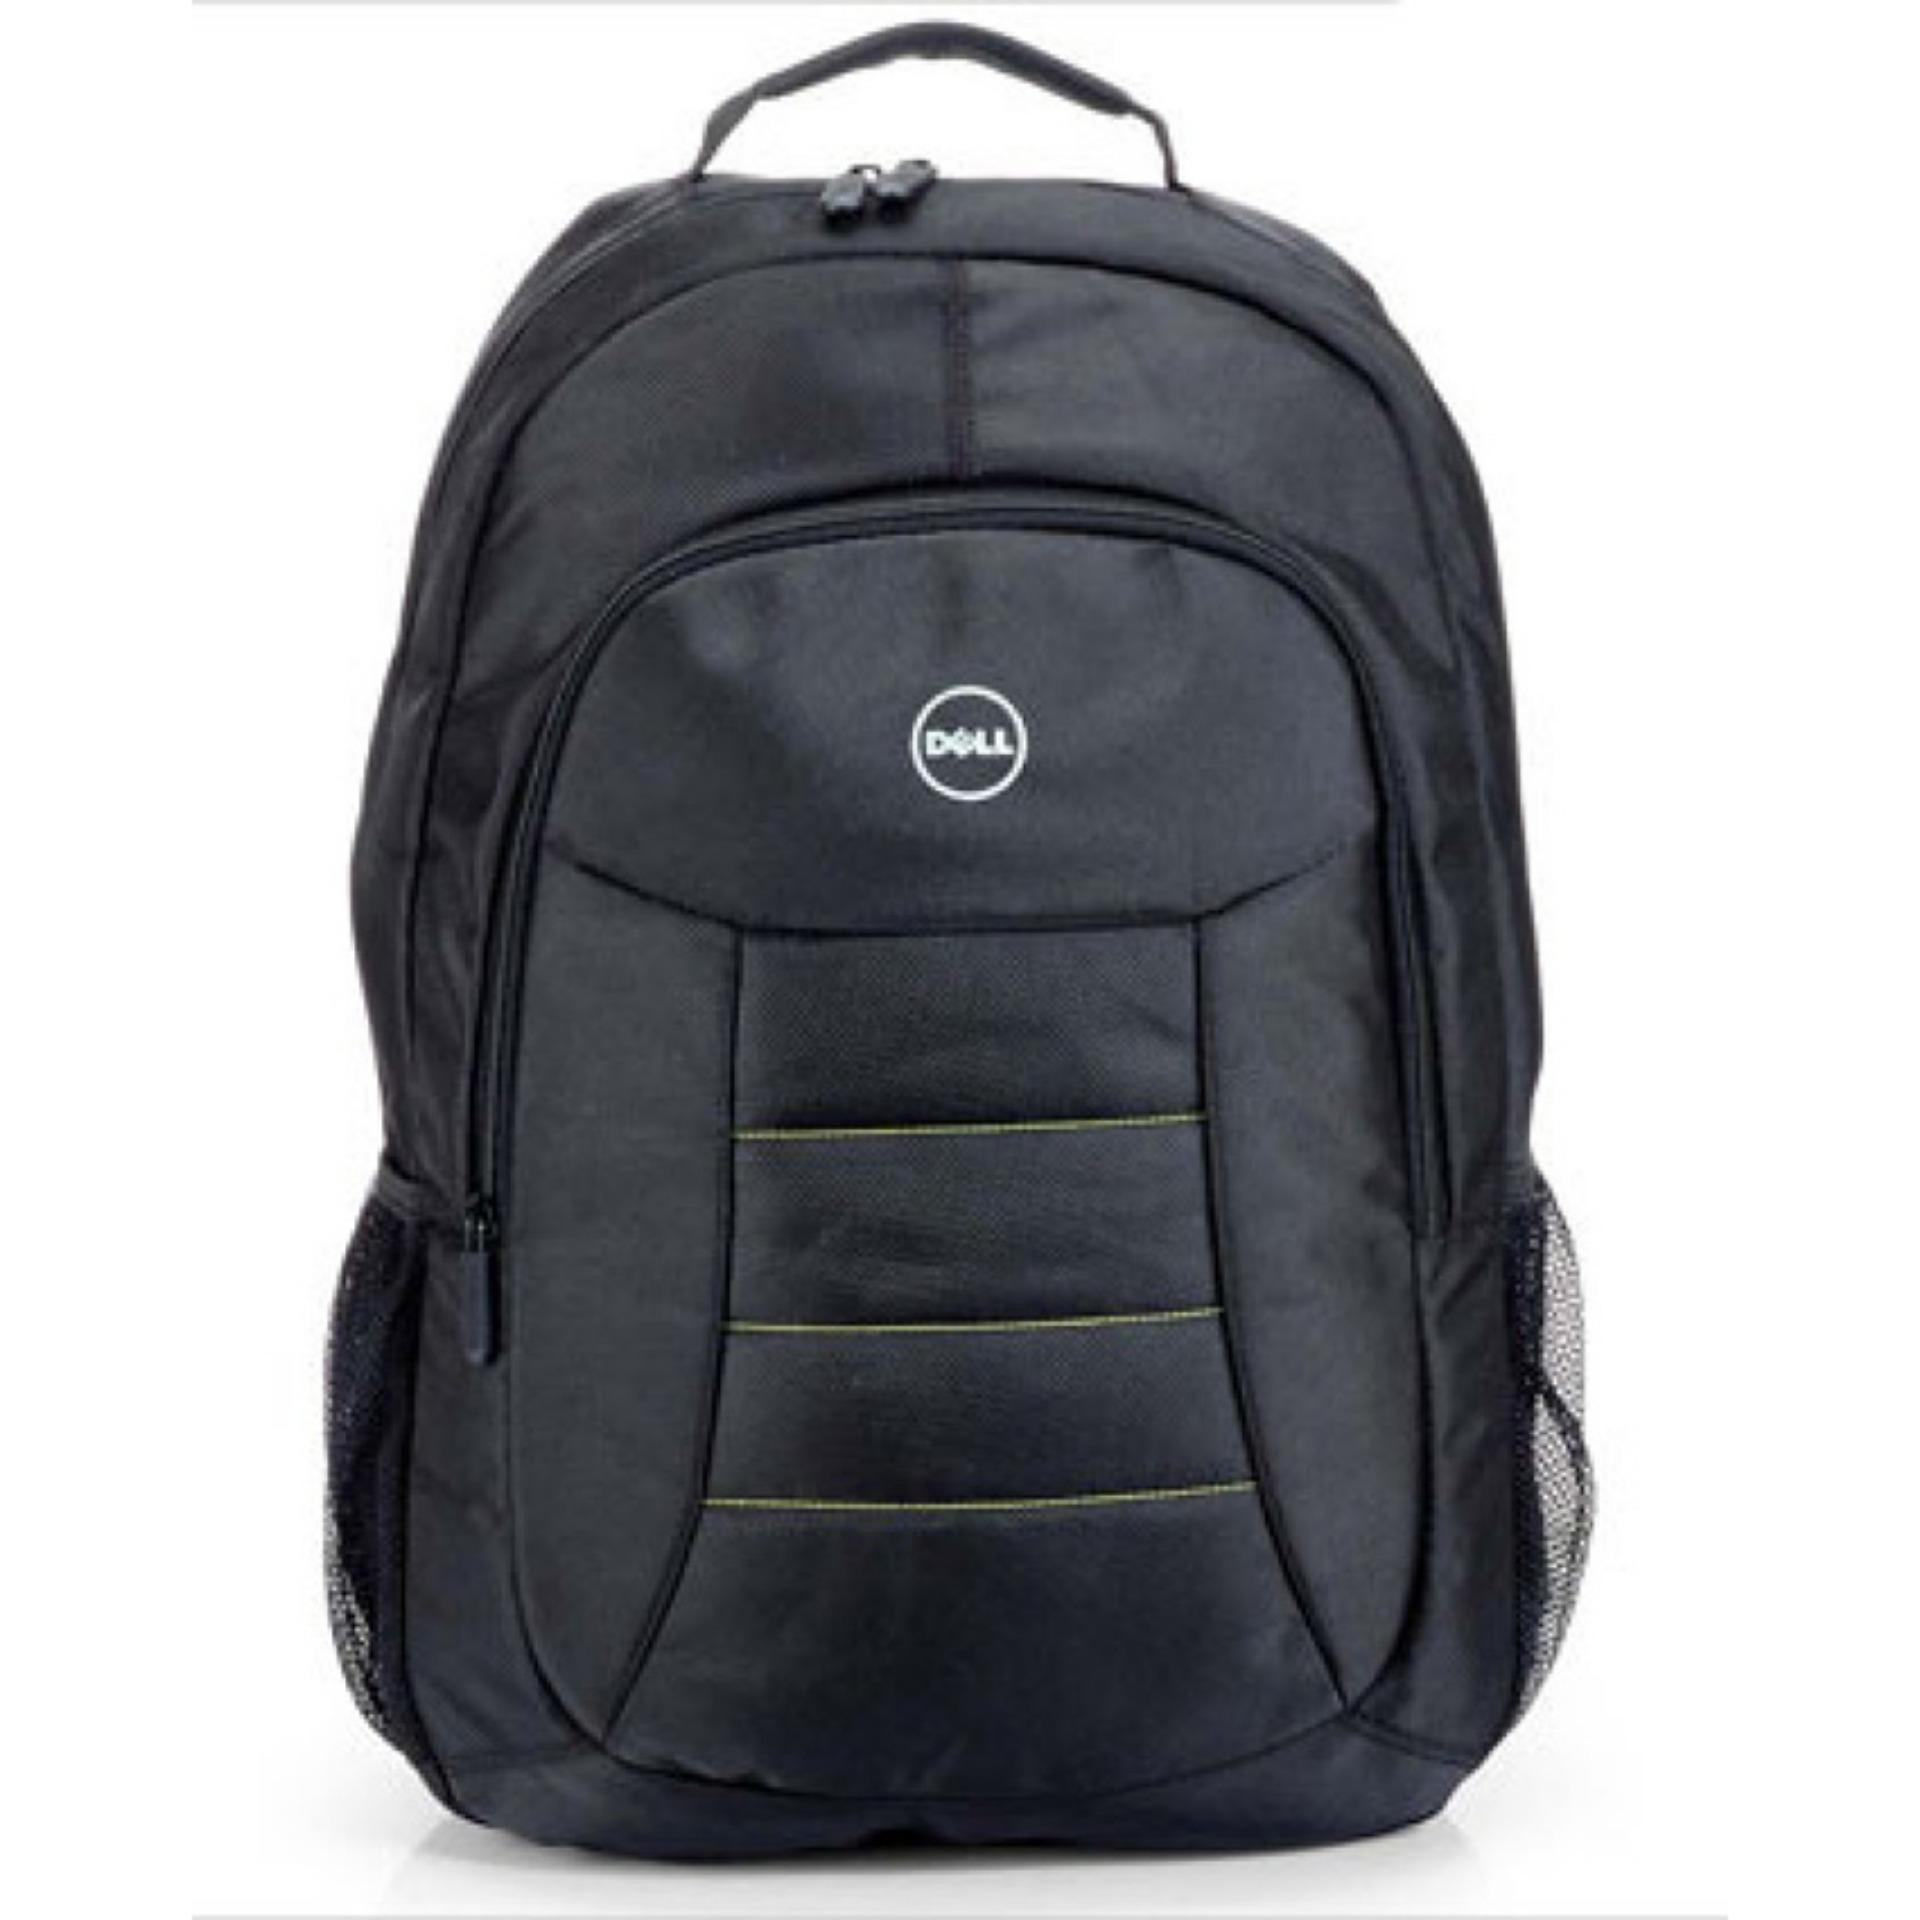 Dell Back Pack - Black db1778f28759c